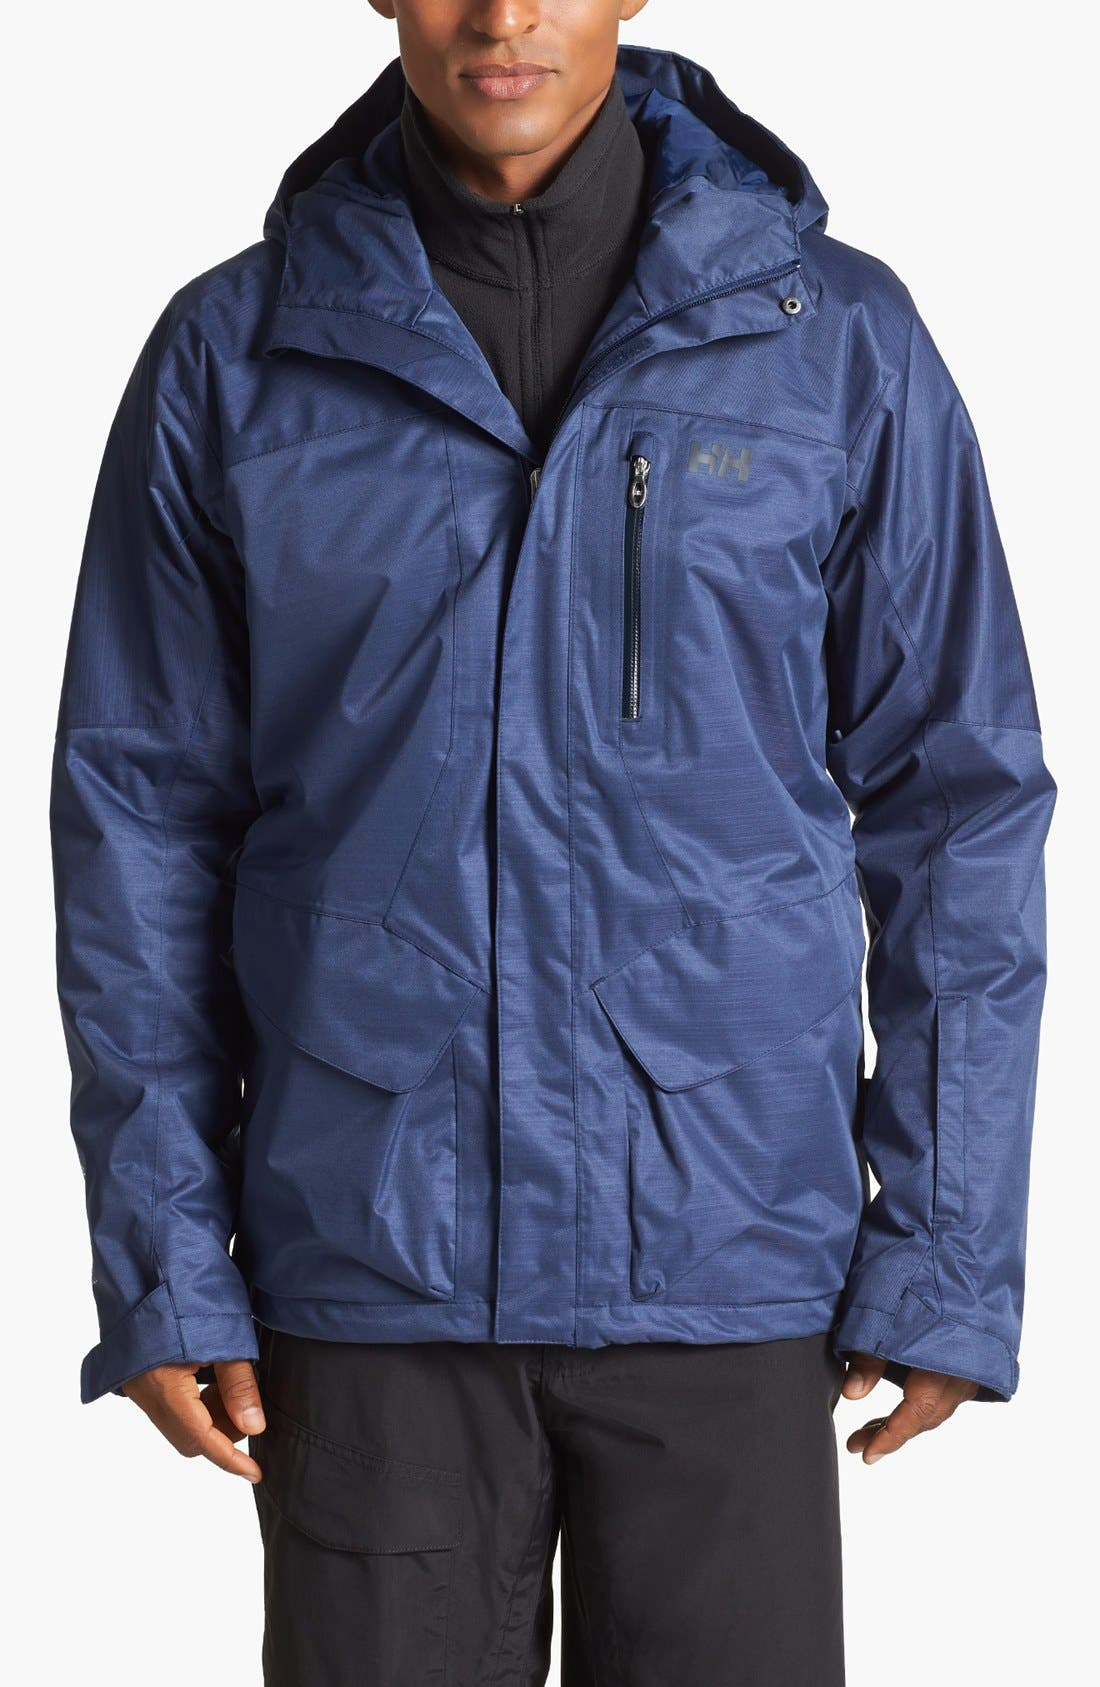 Alternate Image 1 Selected - Helly Hansen 'Clandestine' Jacket